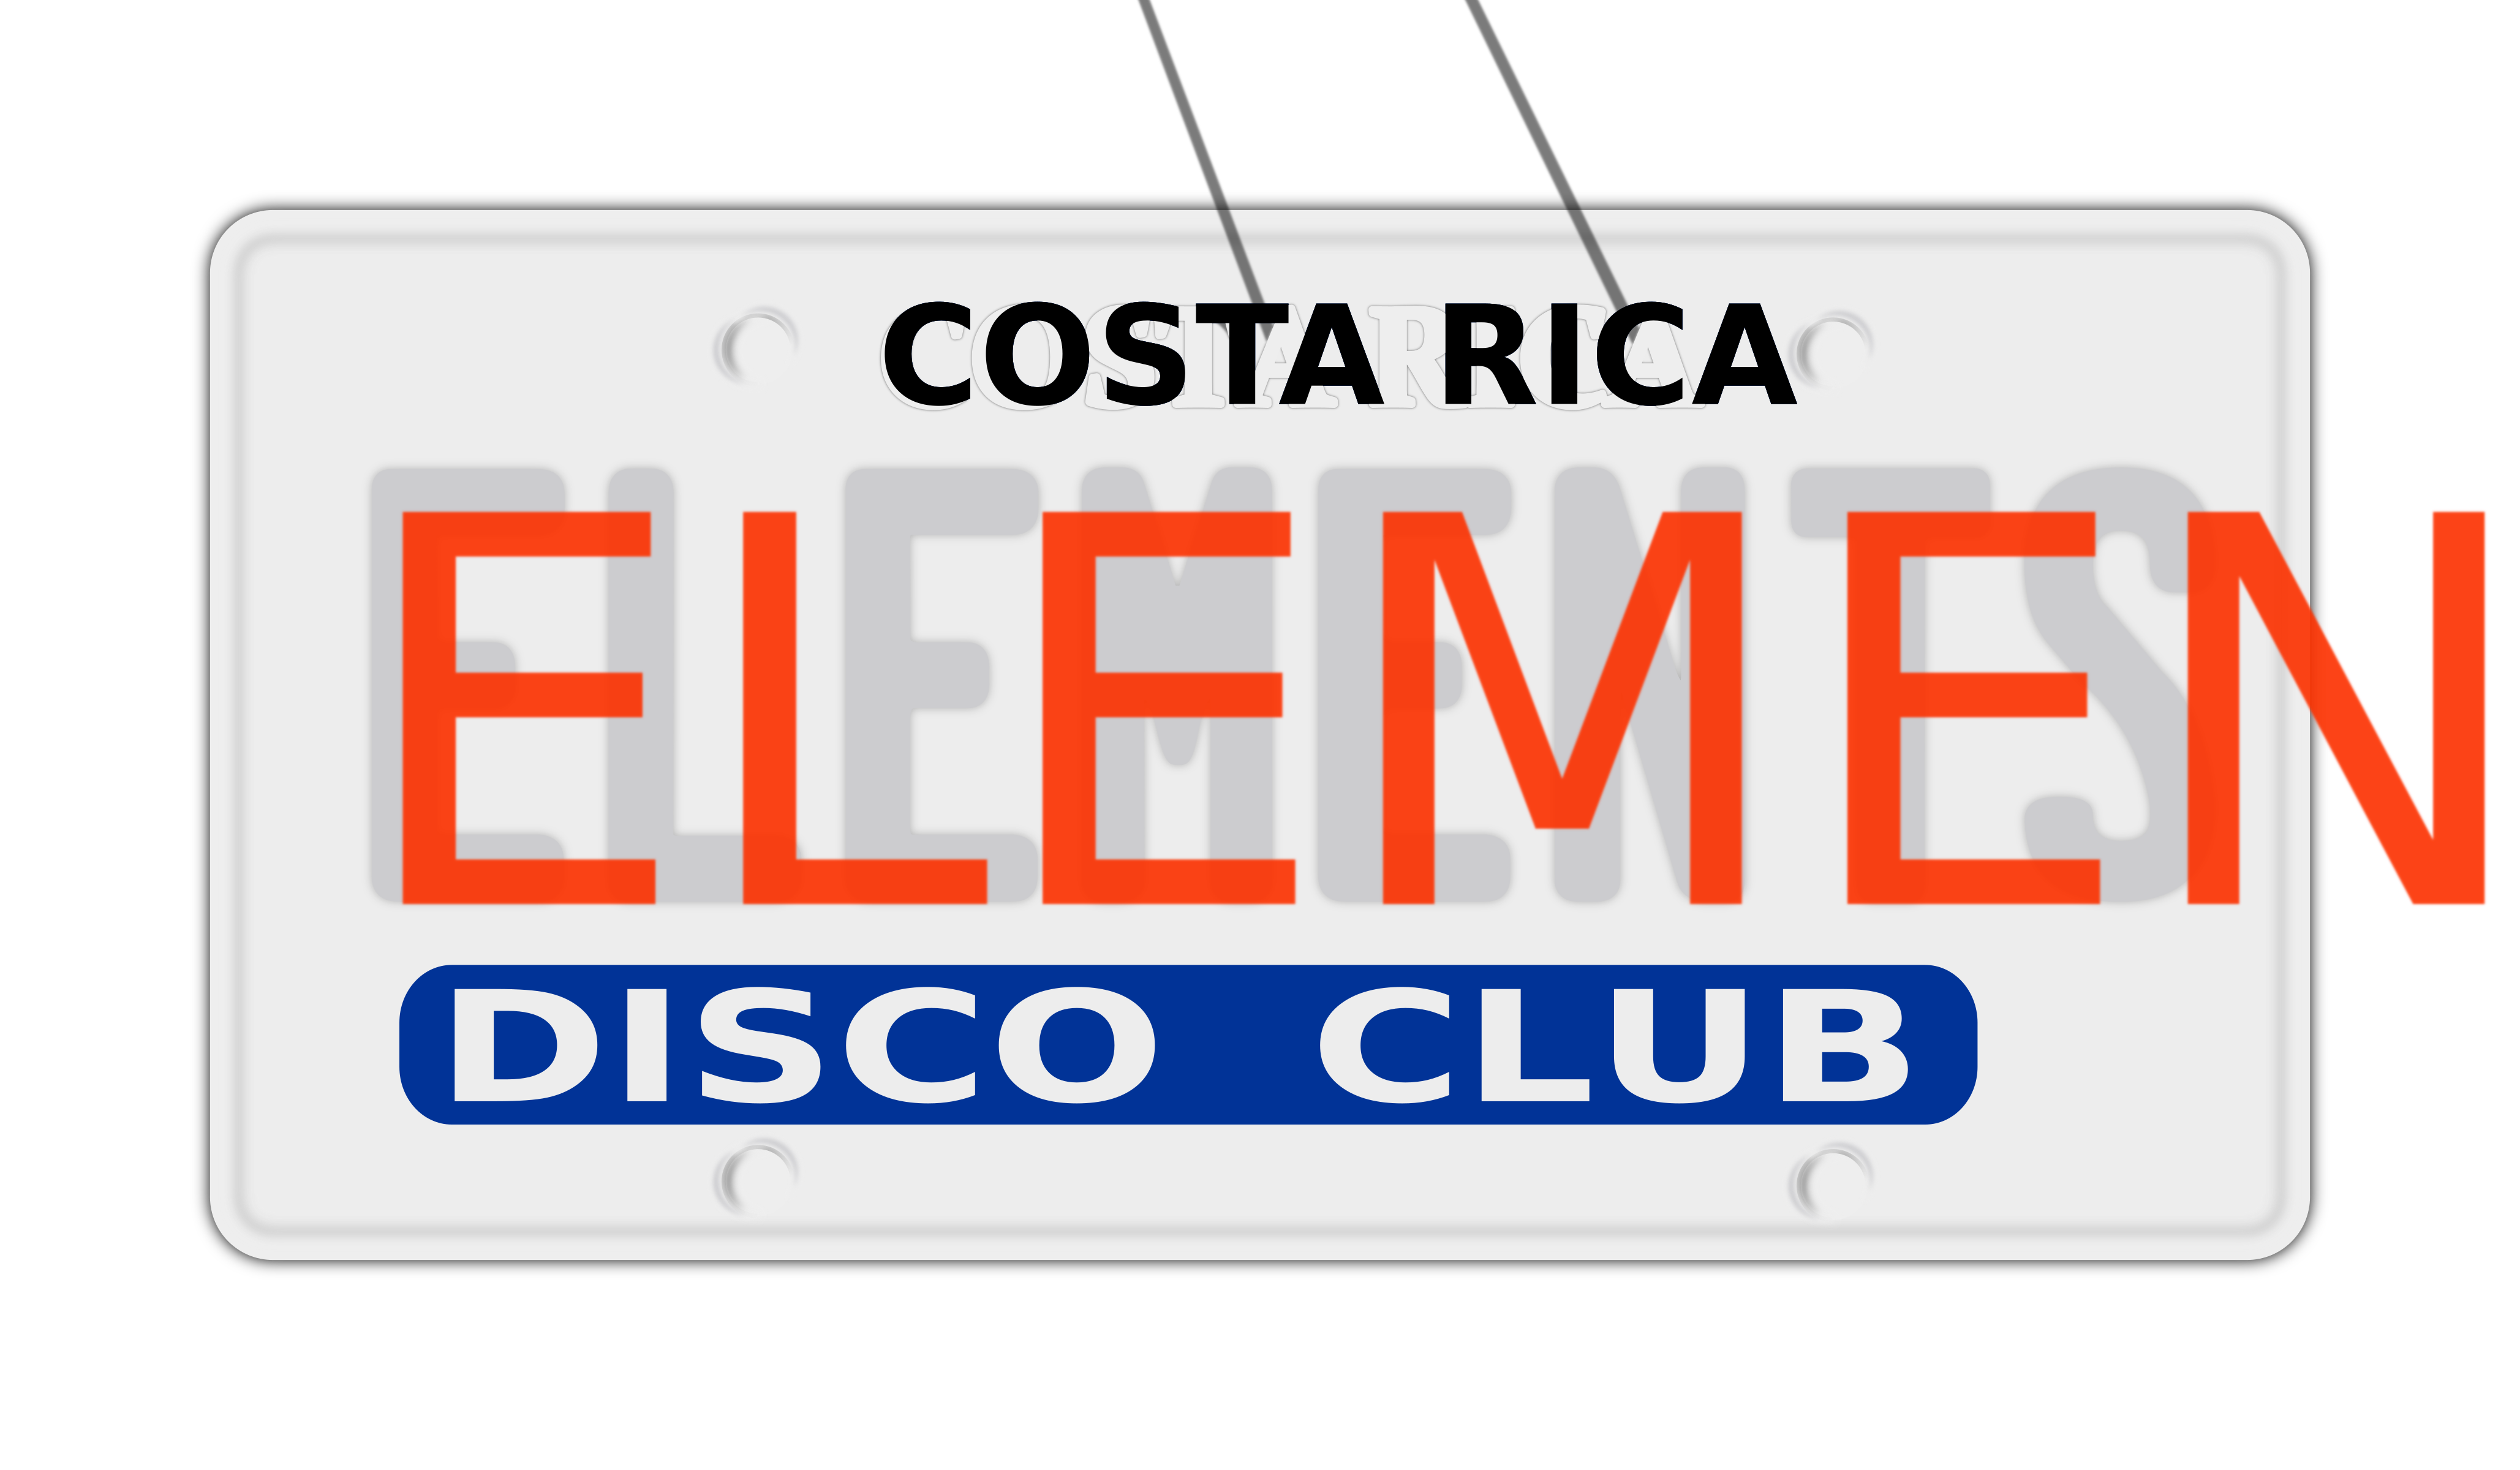 Placa de carro elements by bossiewilde